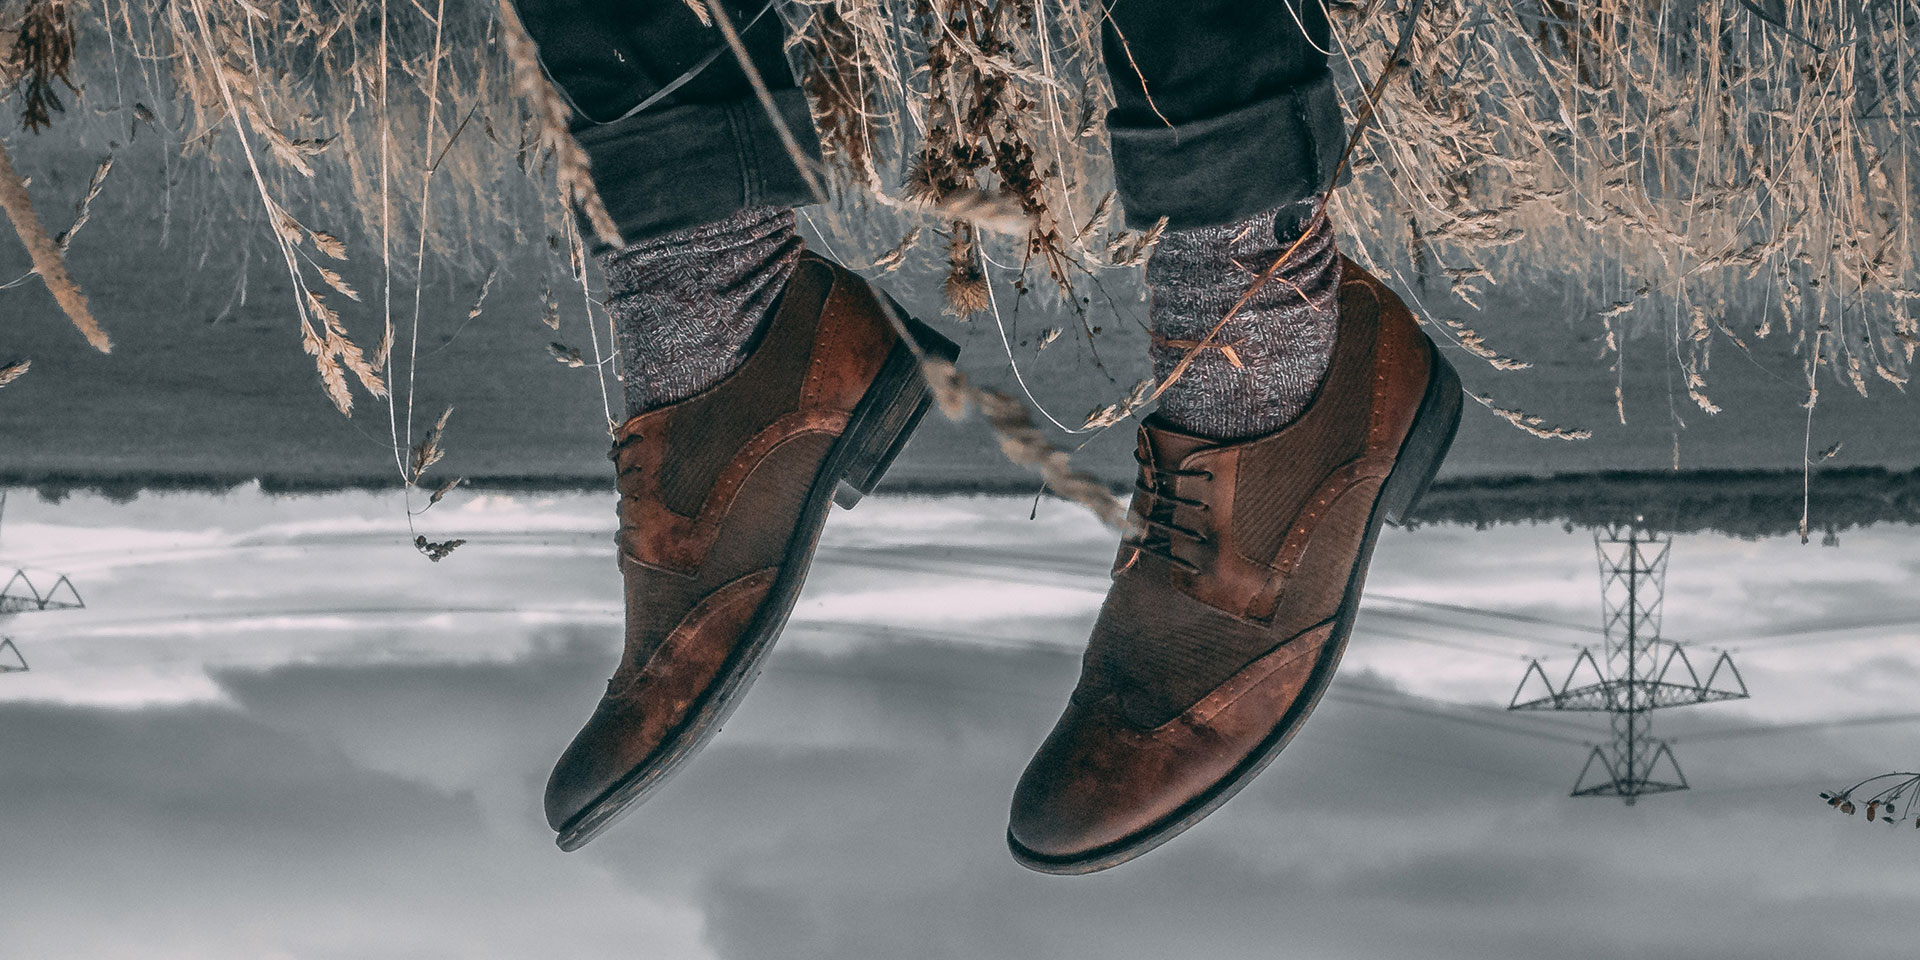 How to Thrive When Others Struggle: Step Into Your Customer's Shoes